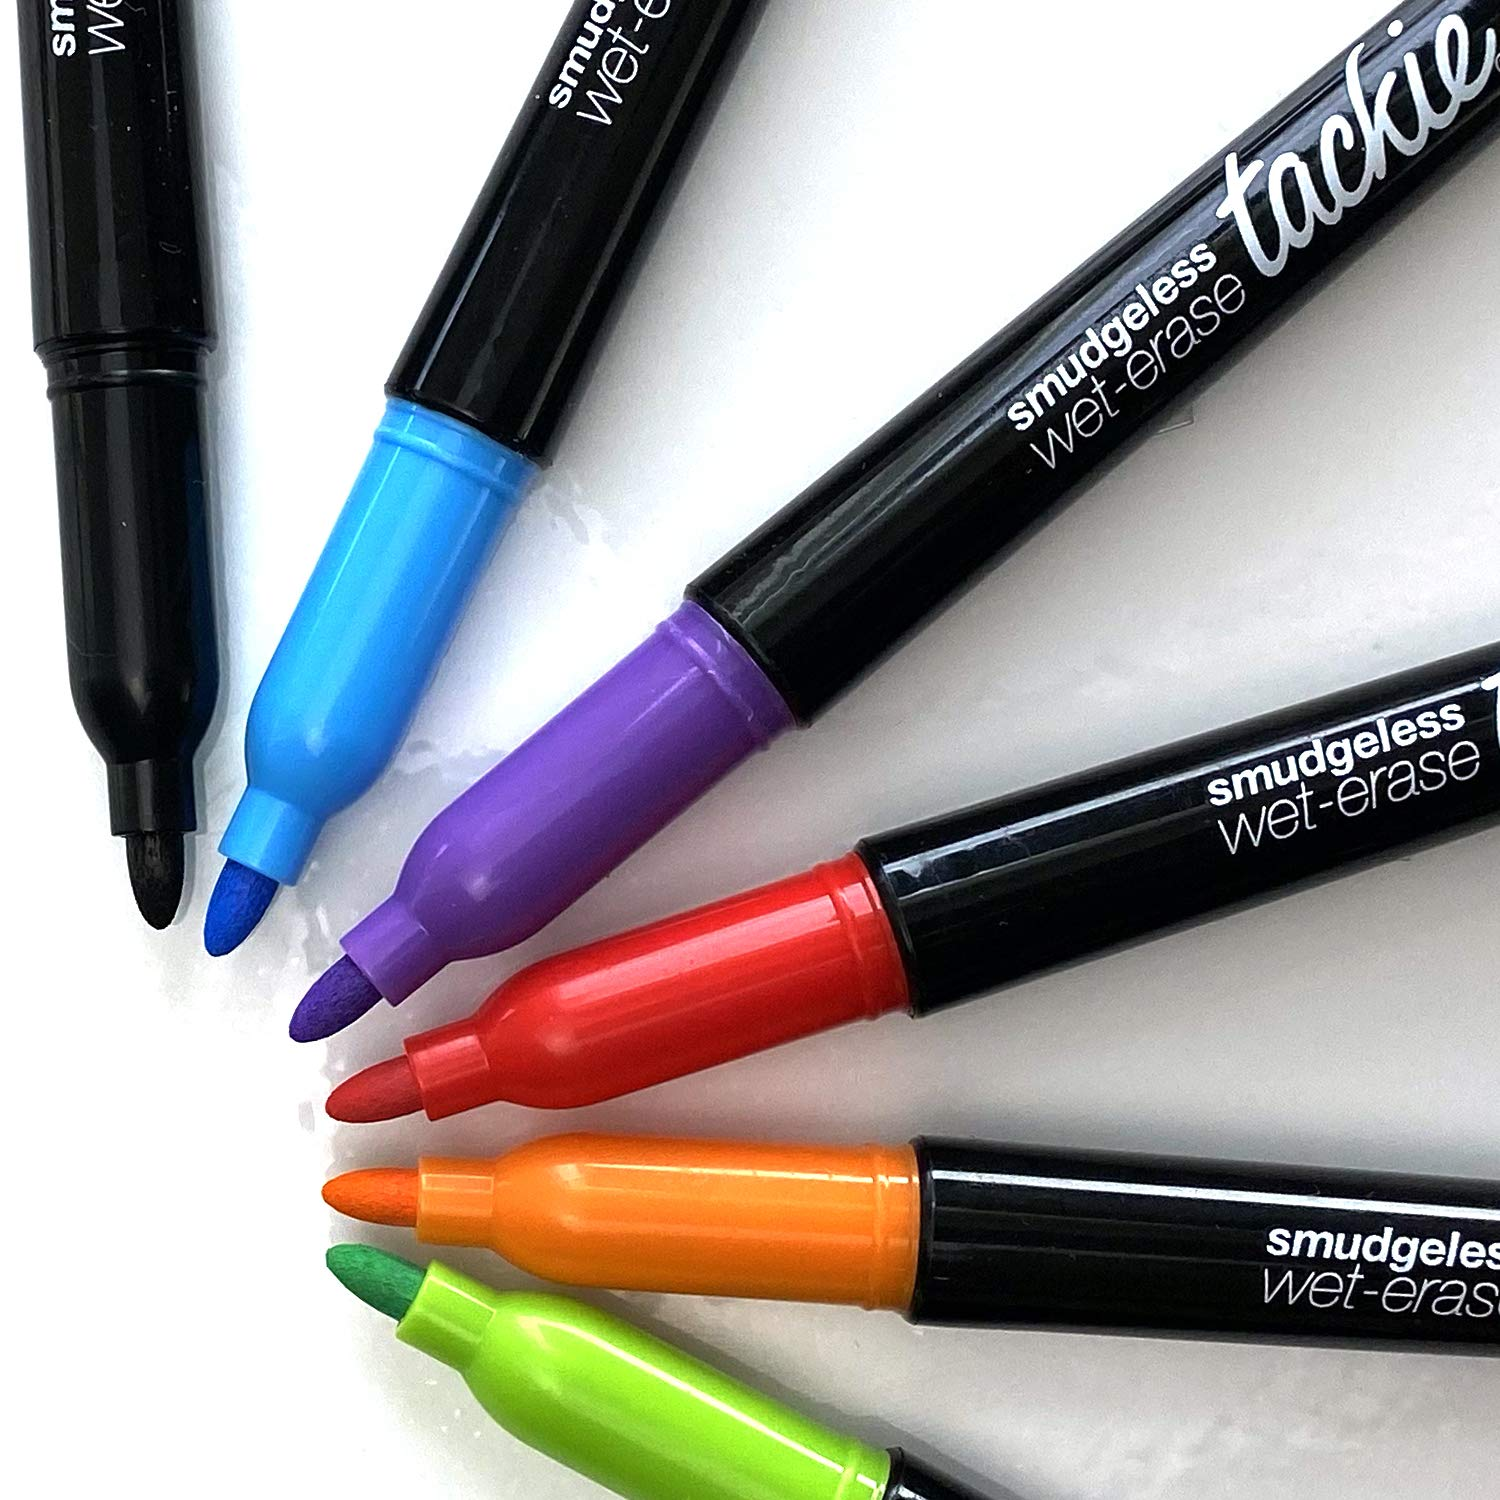 Tackie Markers : Smudge-Free Markers for Dry-Erase Whiteboards. Erases with water! Bullet-Tip Wet-Erase Low Odor Pens. Neon Colors: Red, Teal, Purple, Orange, Green, Black 6-Pack